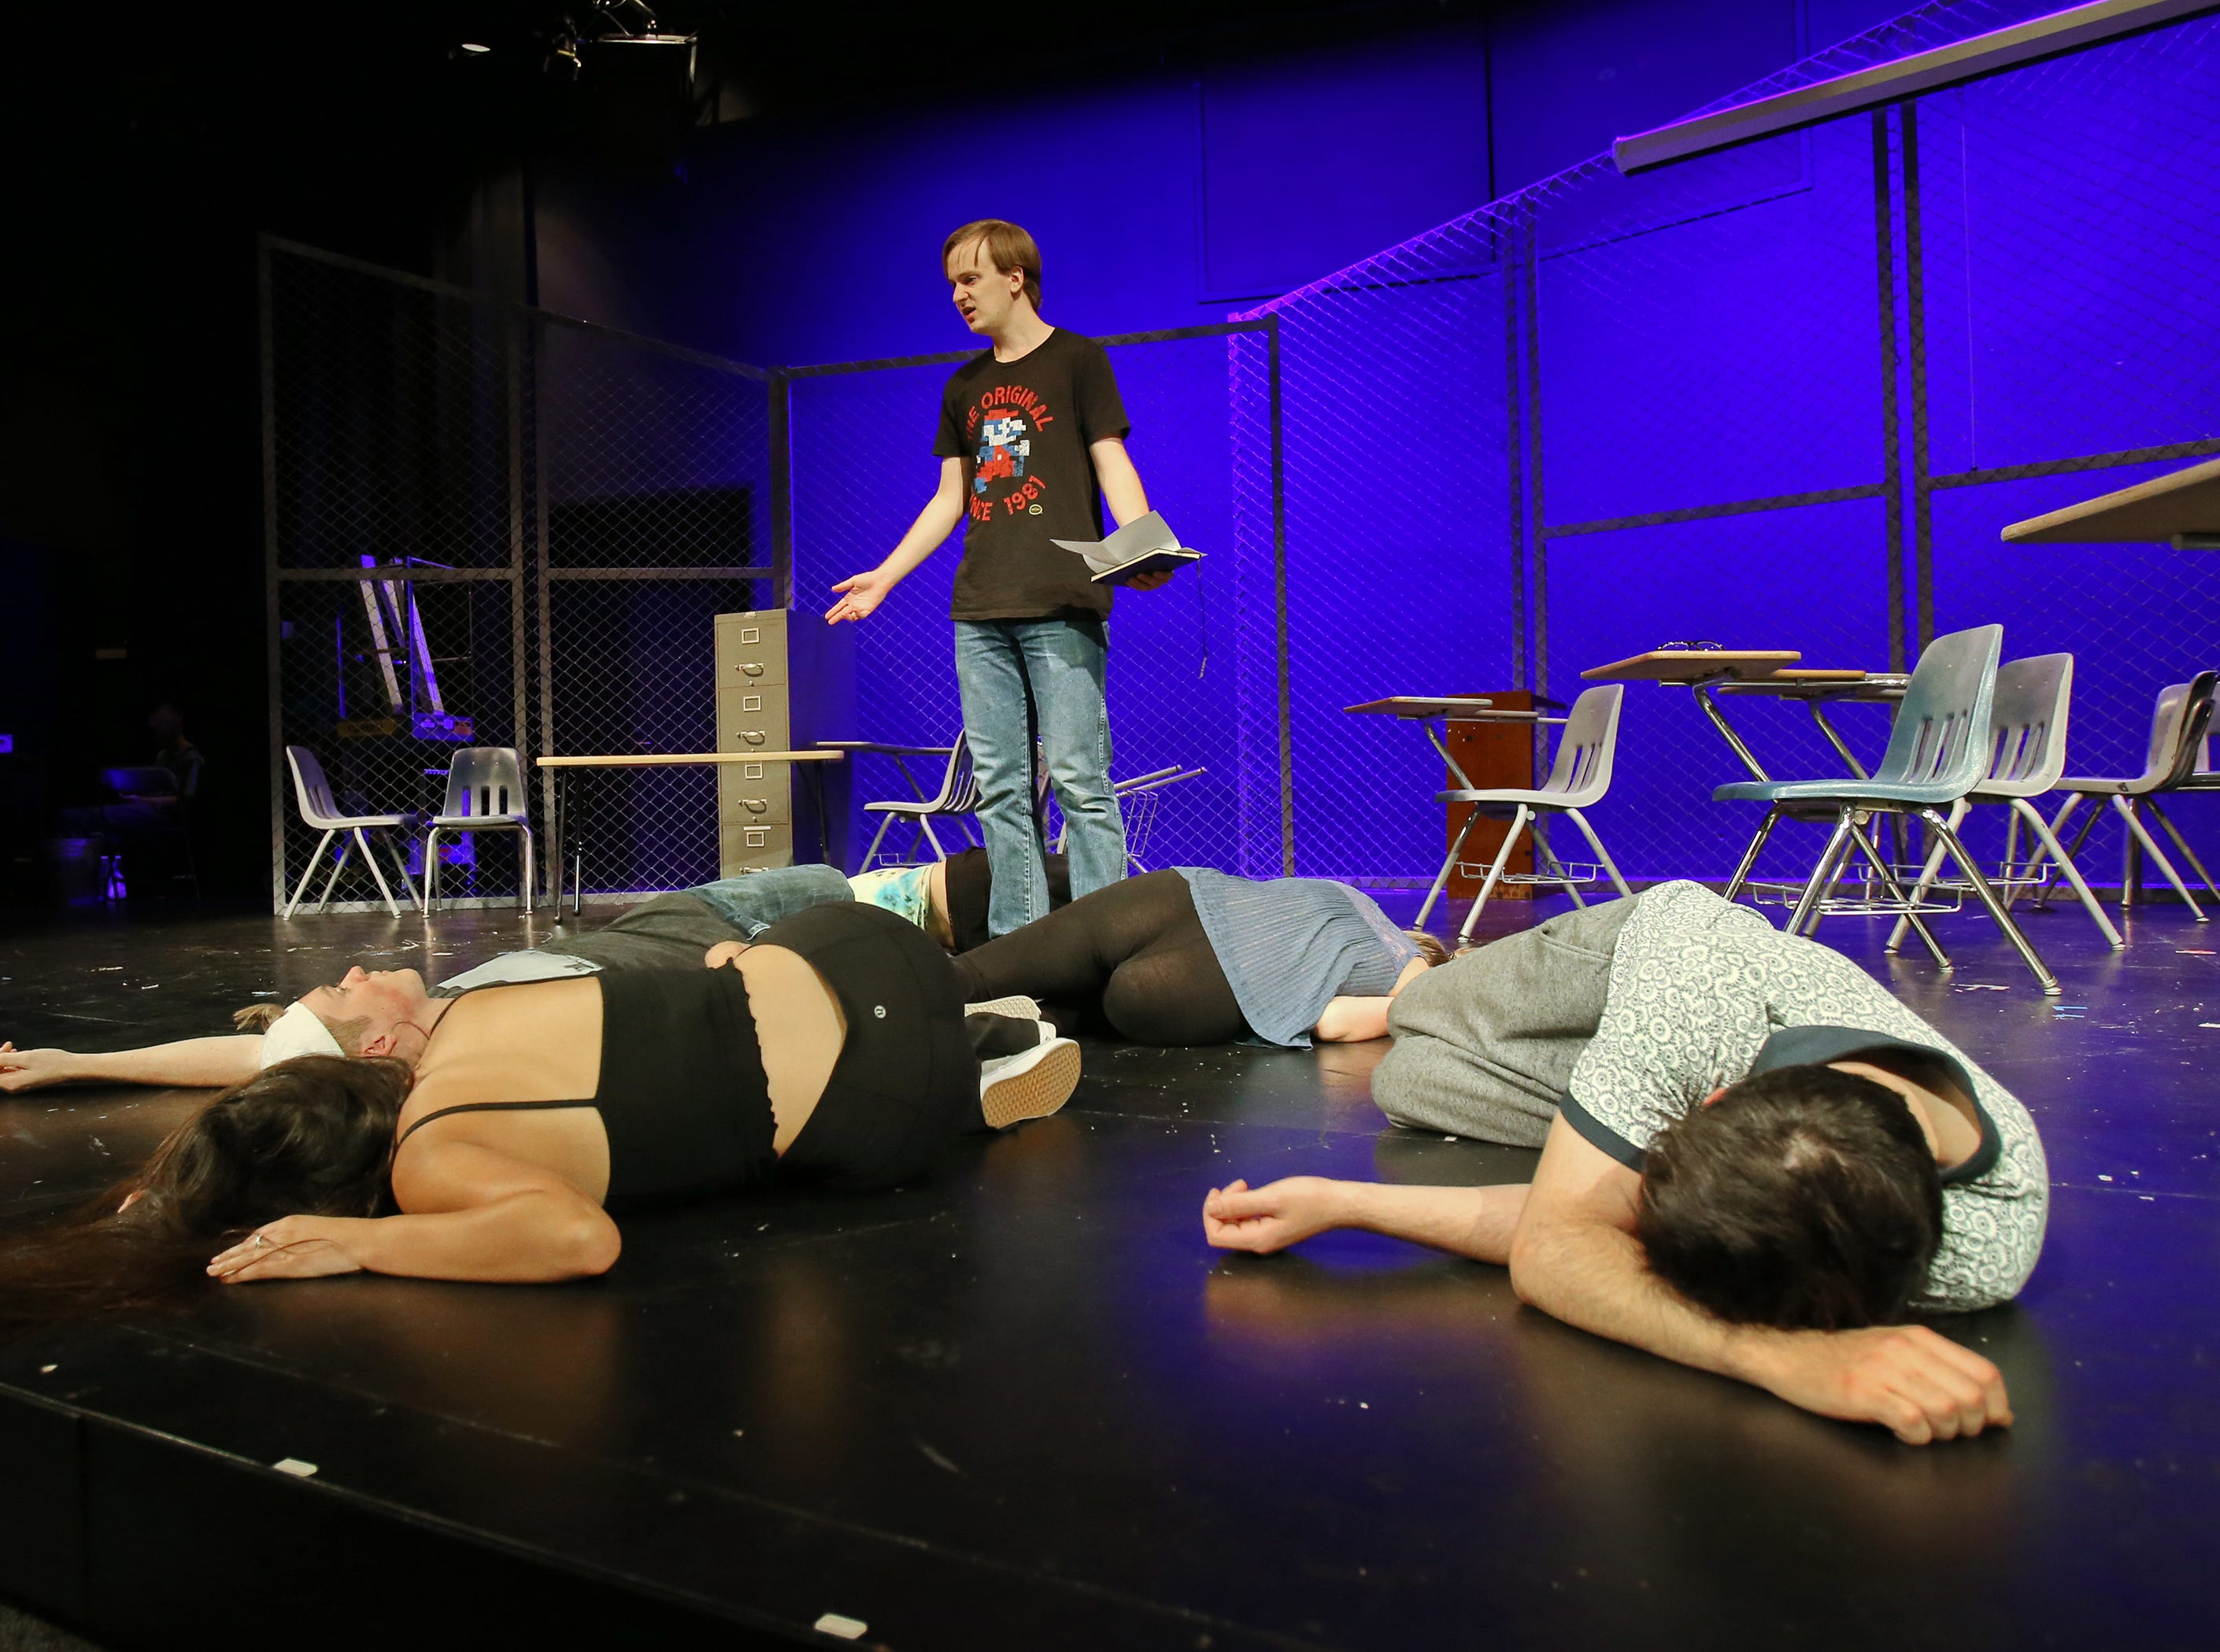 """Jacob White stands among his fallen cast members in California Lutheran University's production of """"Columbinus,"""" which is based on the 1999 shooting at Columbine High School in Littleton, Colorado. White plays the role of shooter Dylan Klebold. The shooting, which claimed the lives of 15 people, was the deadliest school shooting in the United States at the time."""